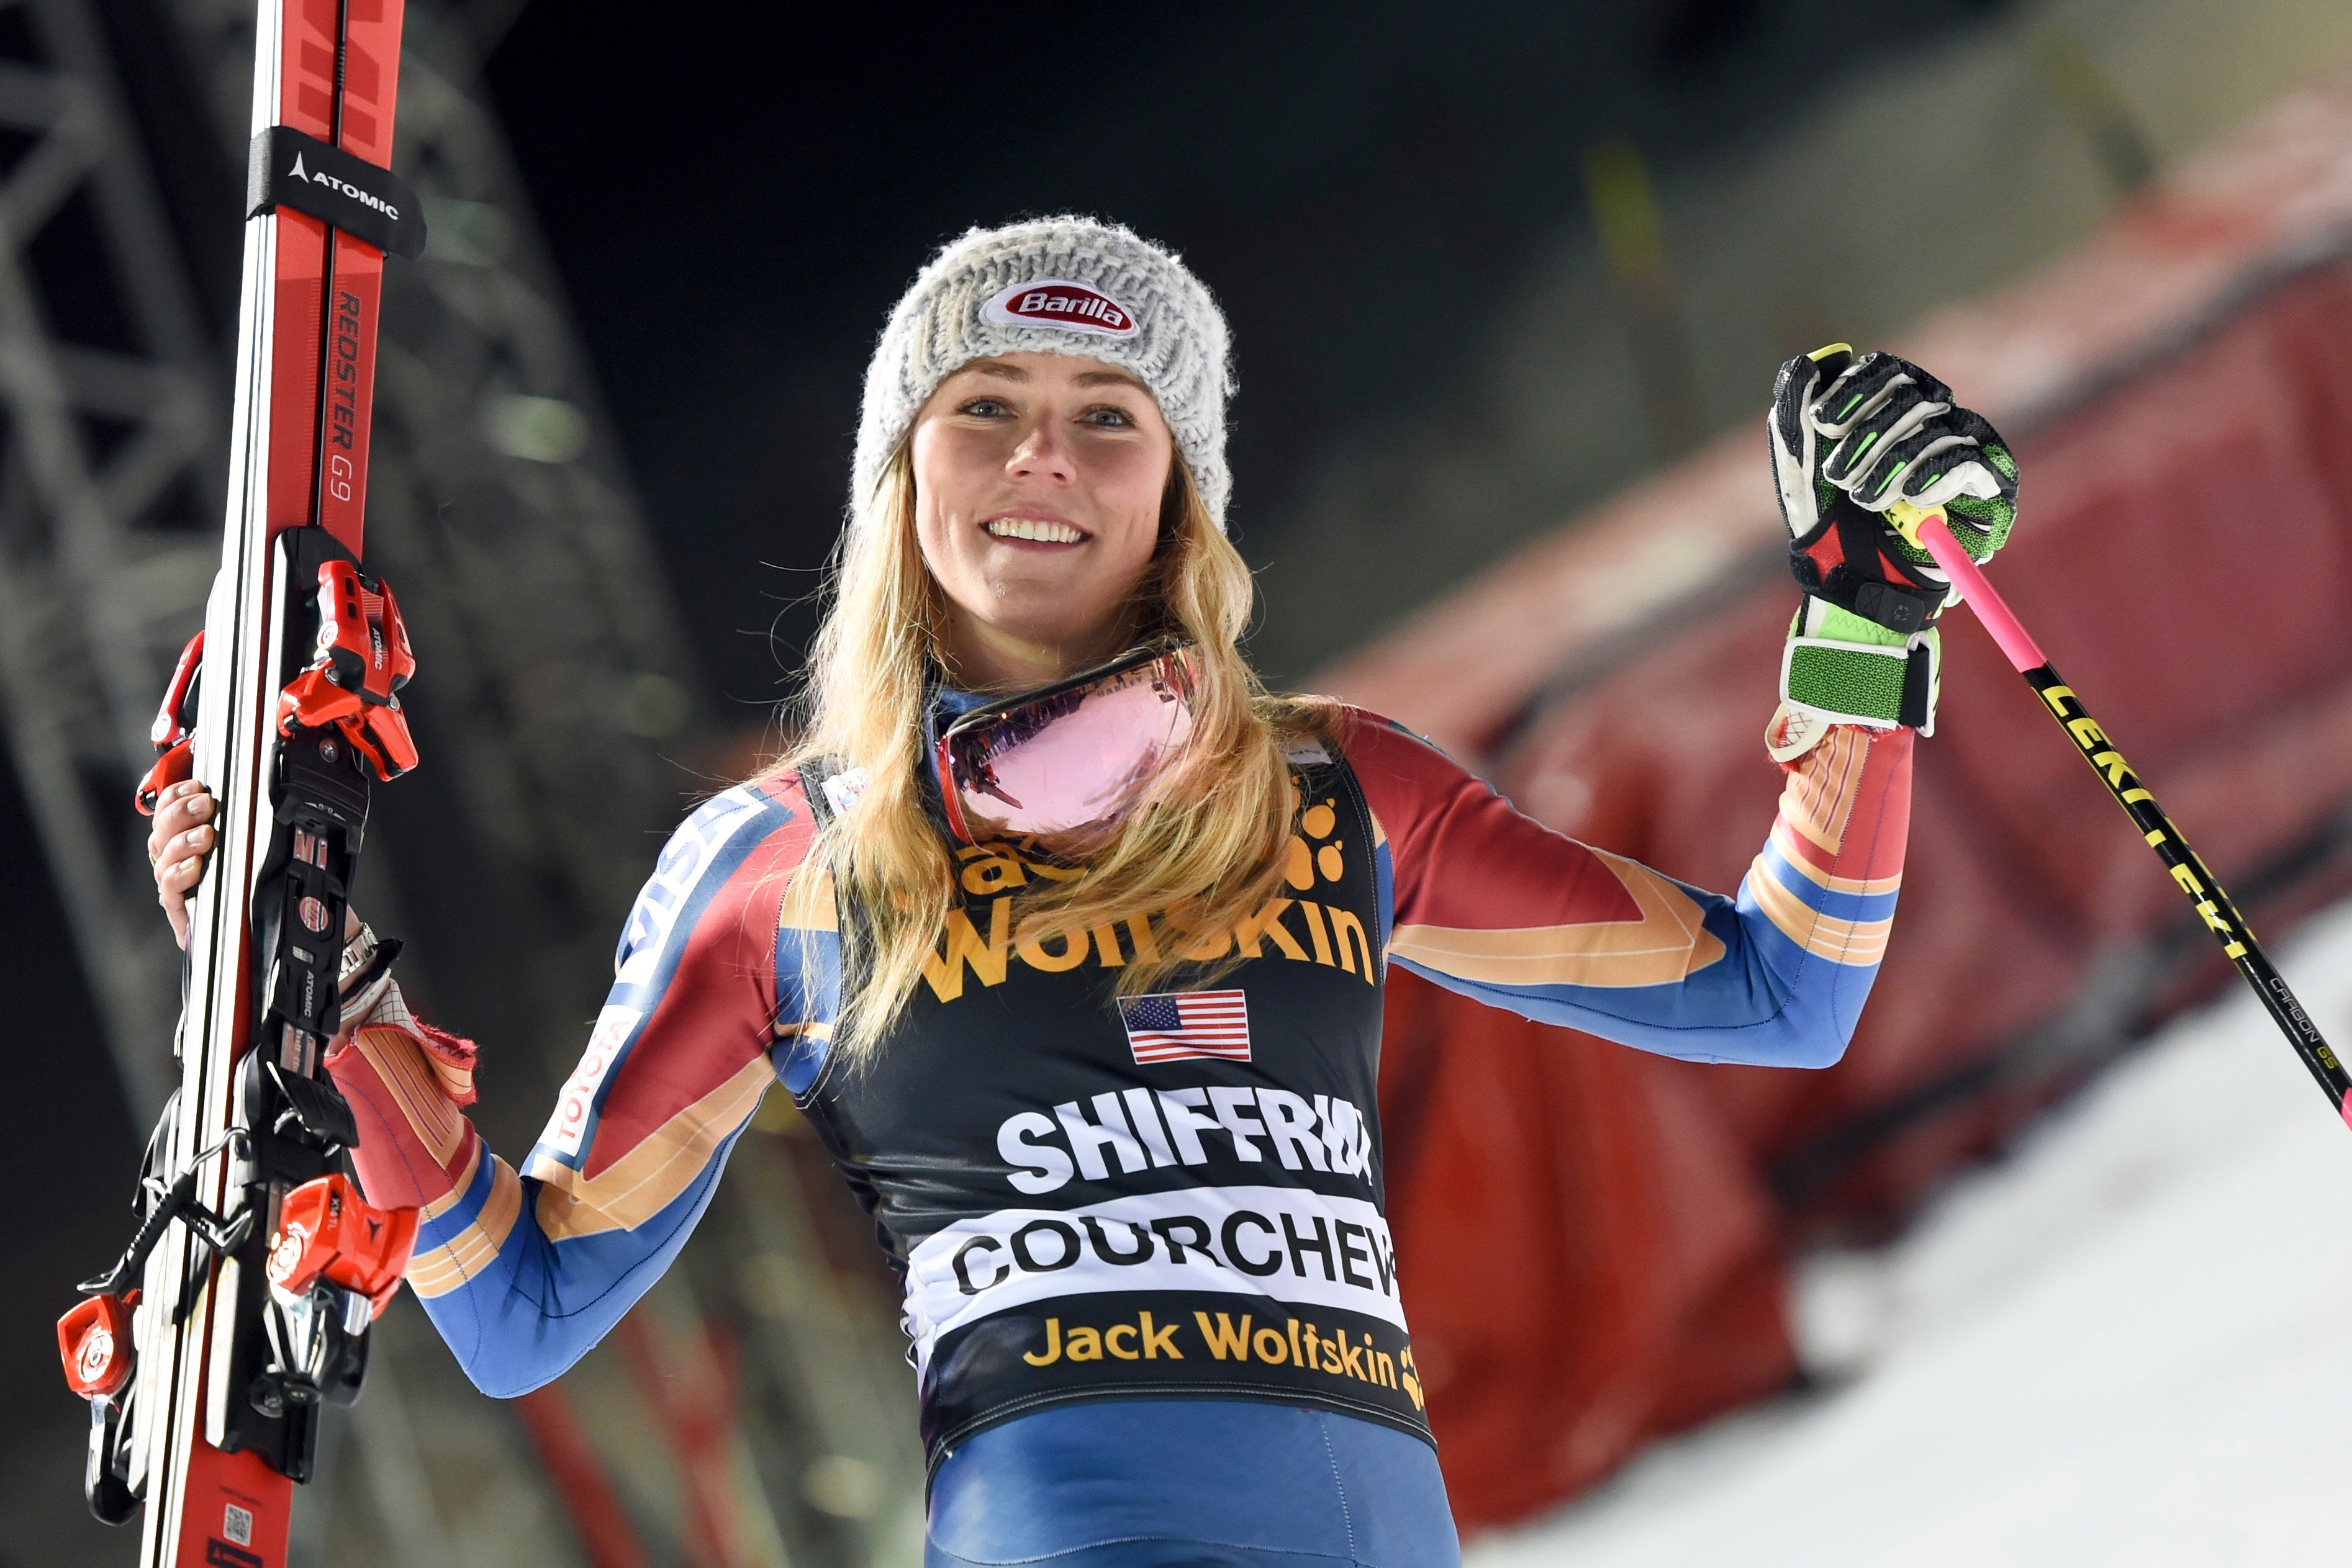 Shiffrin leads World Cup slalom, closes on 40th career win